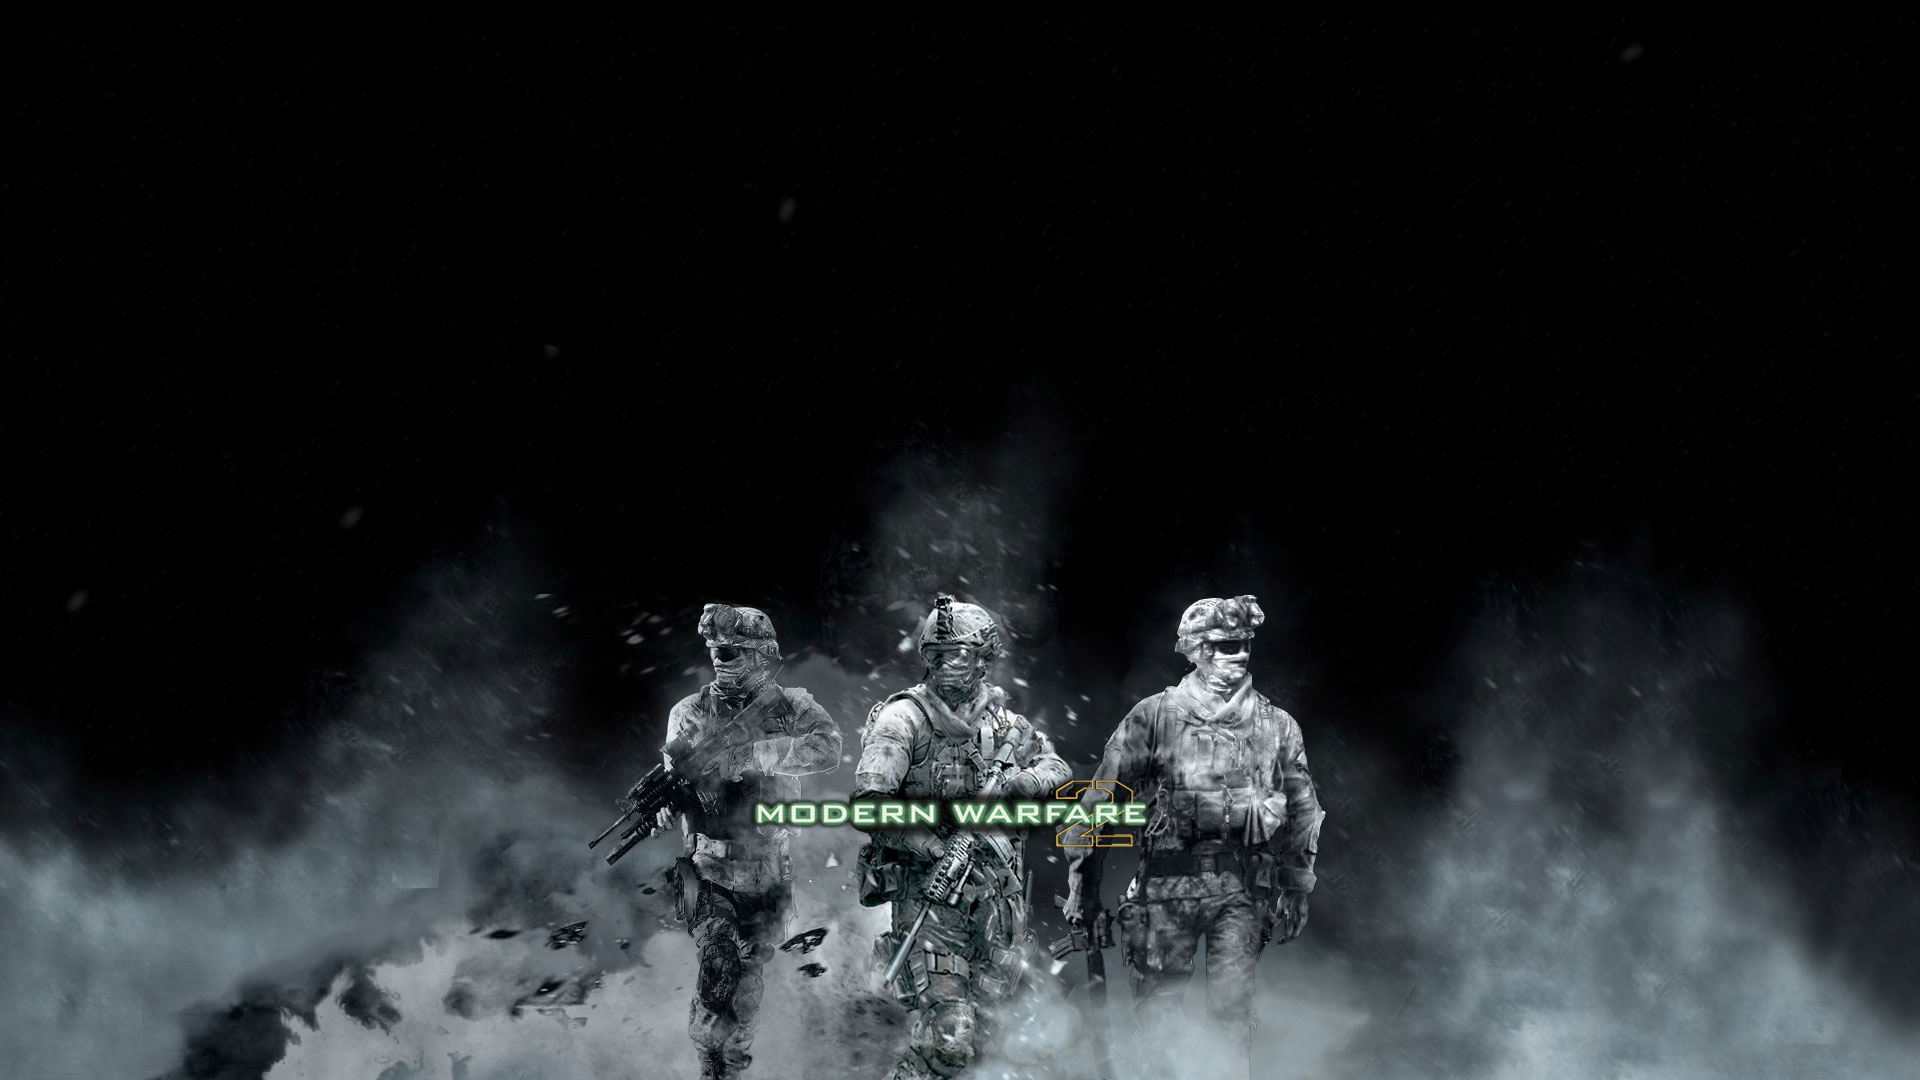 Call Of Duty Modern Warfare 2 Wallpaper 11 Wallpapersbq